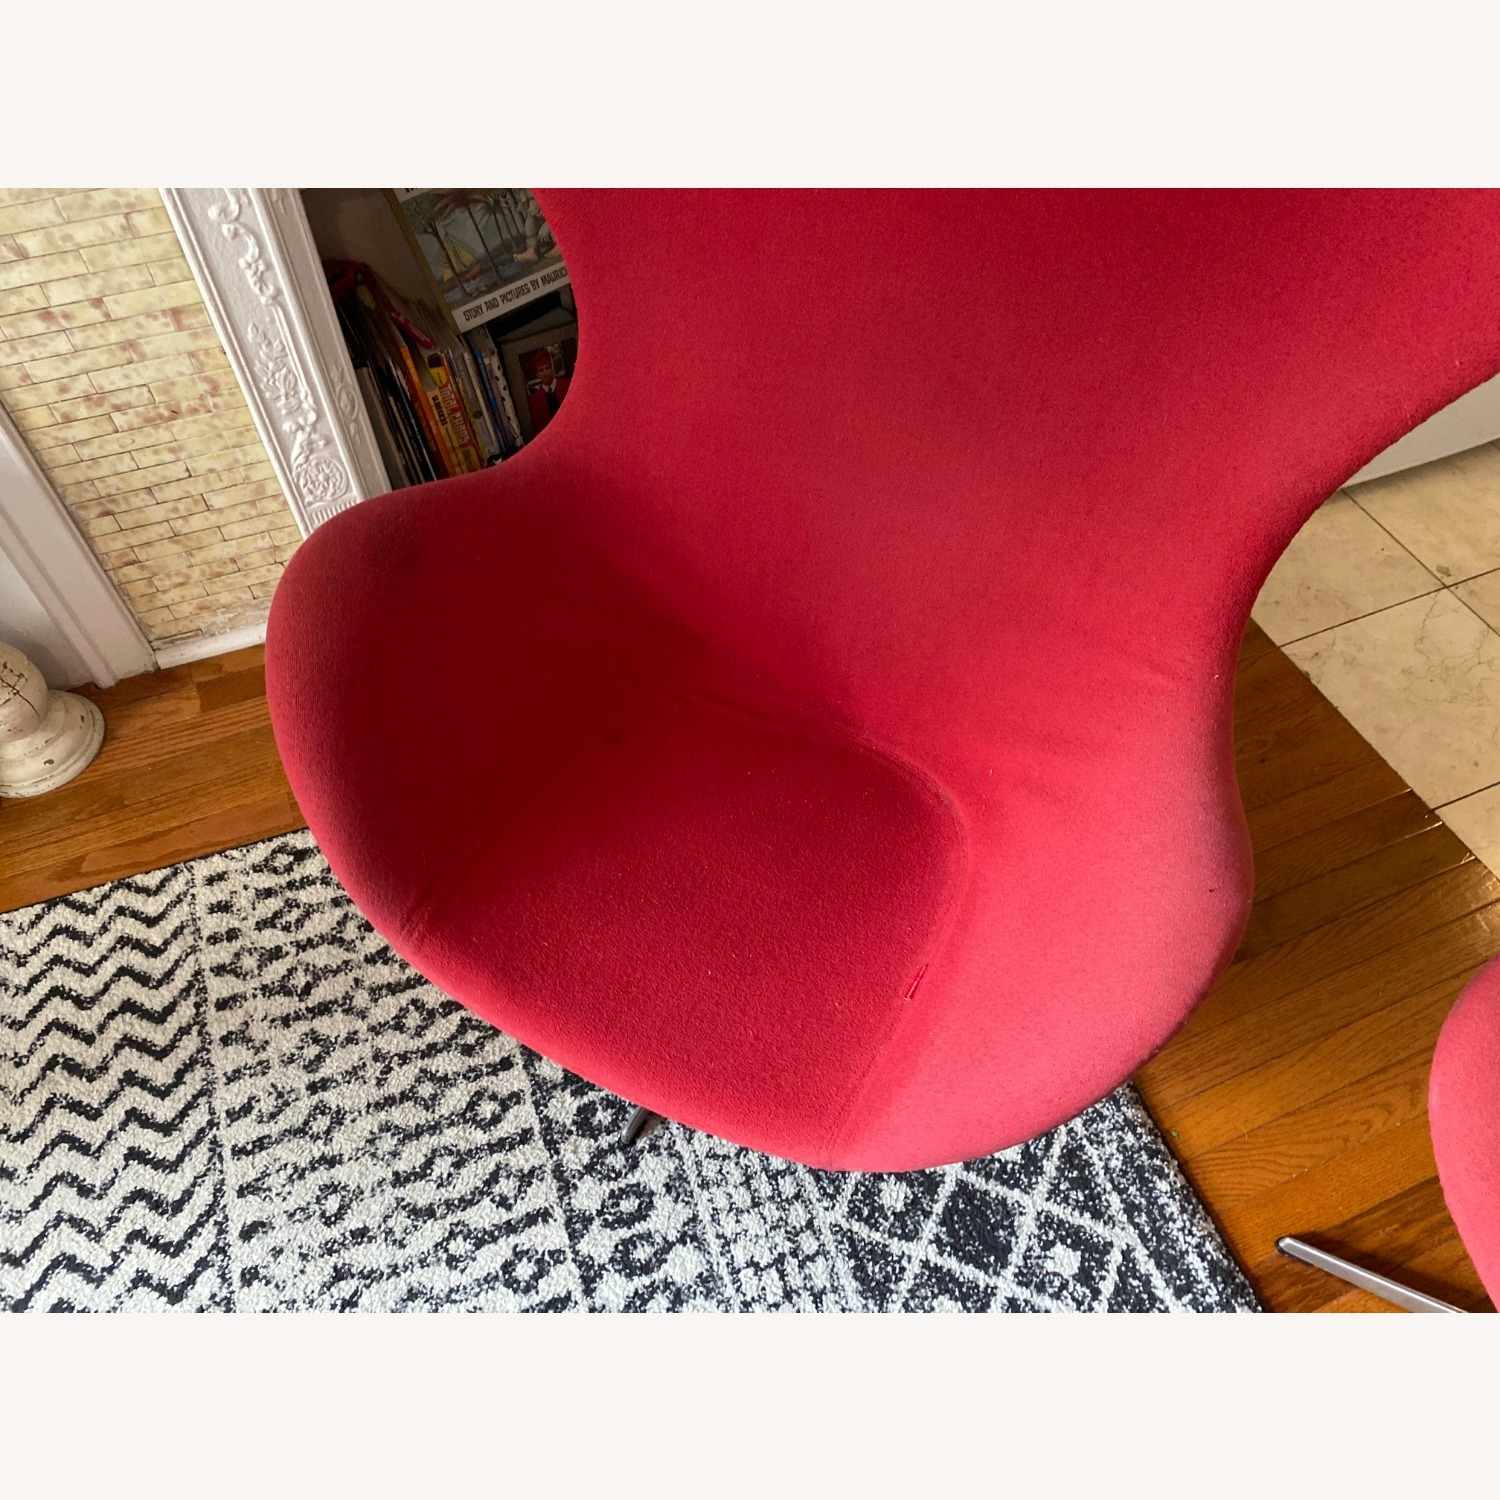 Fritz Hanson Egg Chair and footstool - image-12